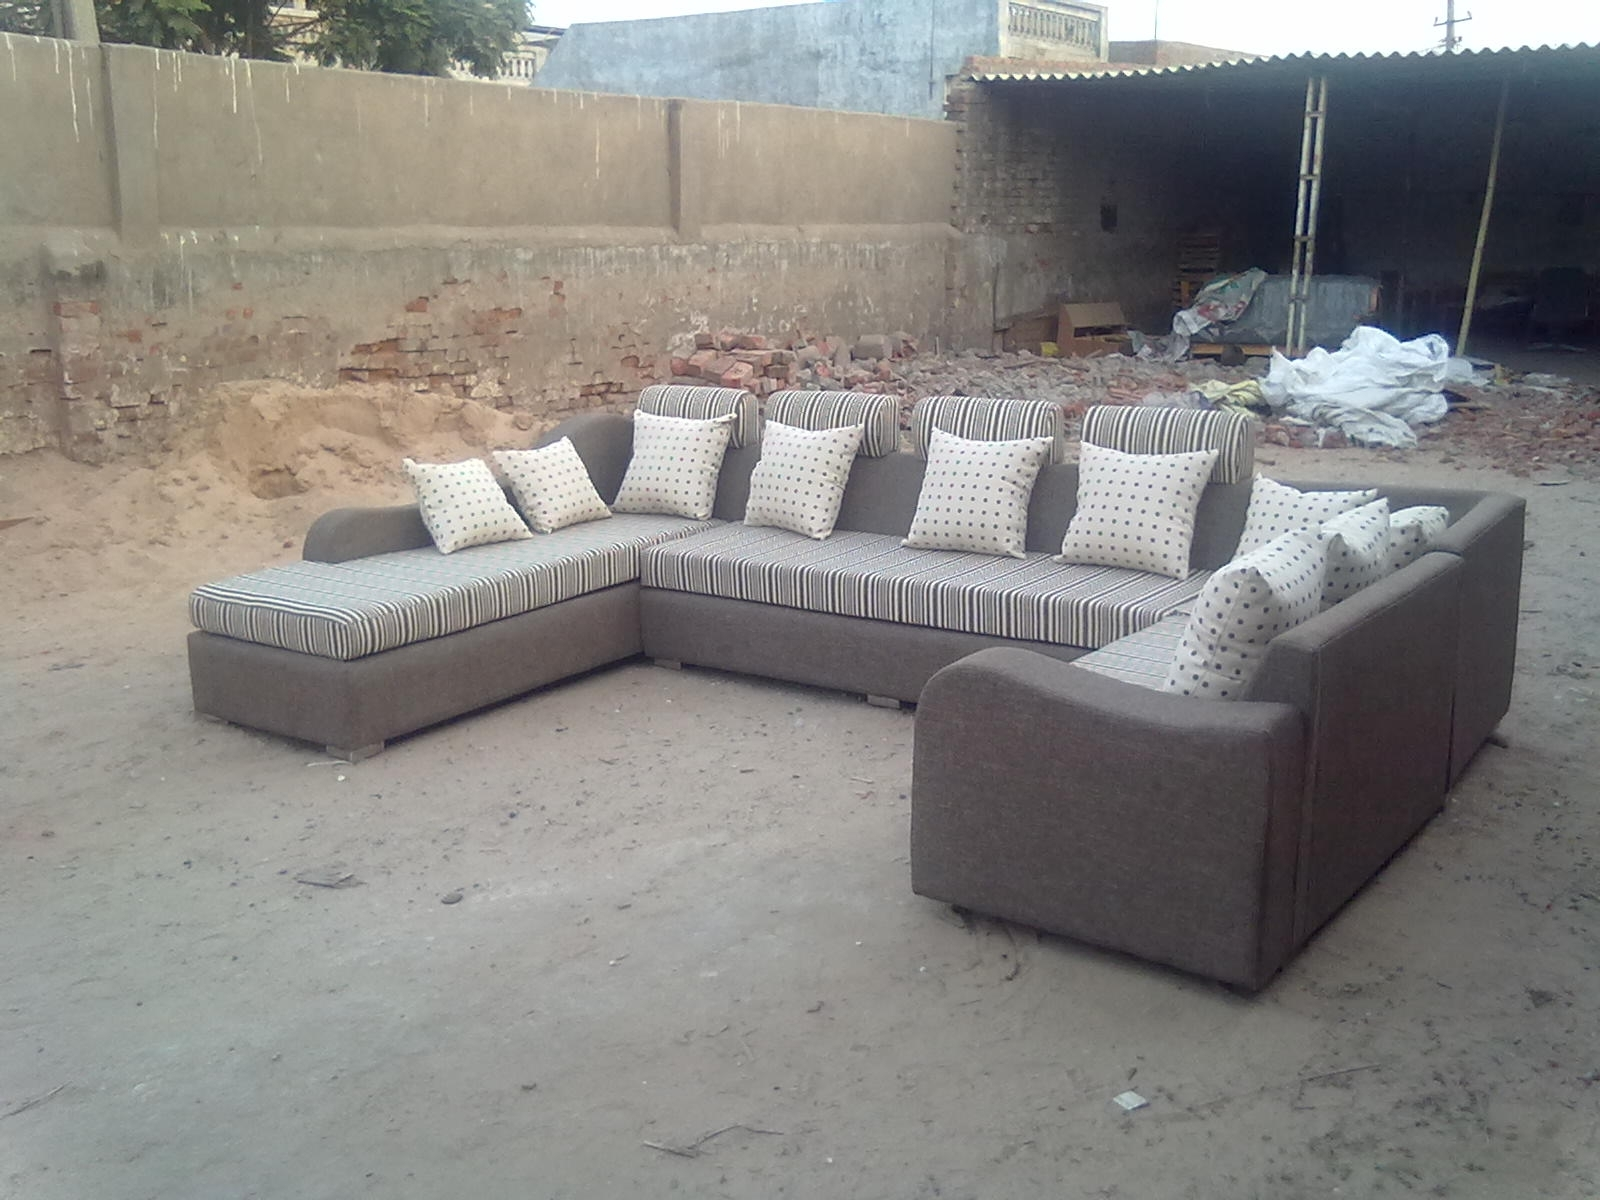 Widely Used C Shaped Sofas Pertaining To Shree Dinkar Furniture (View 13 of 15)